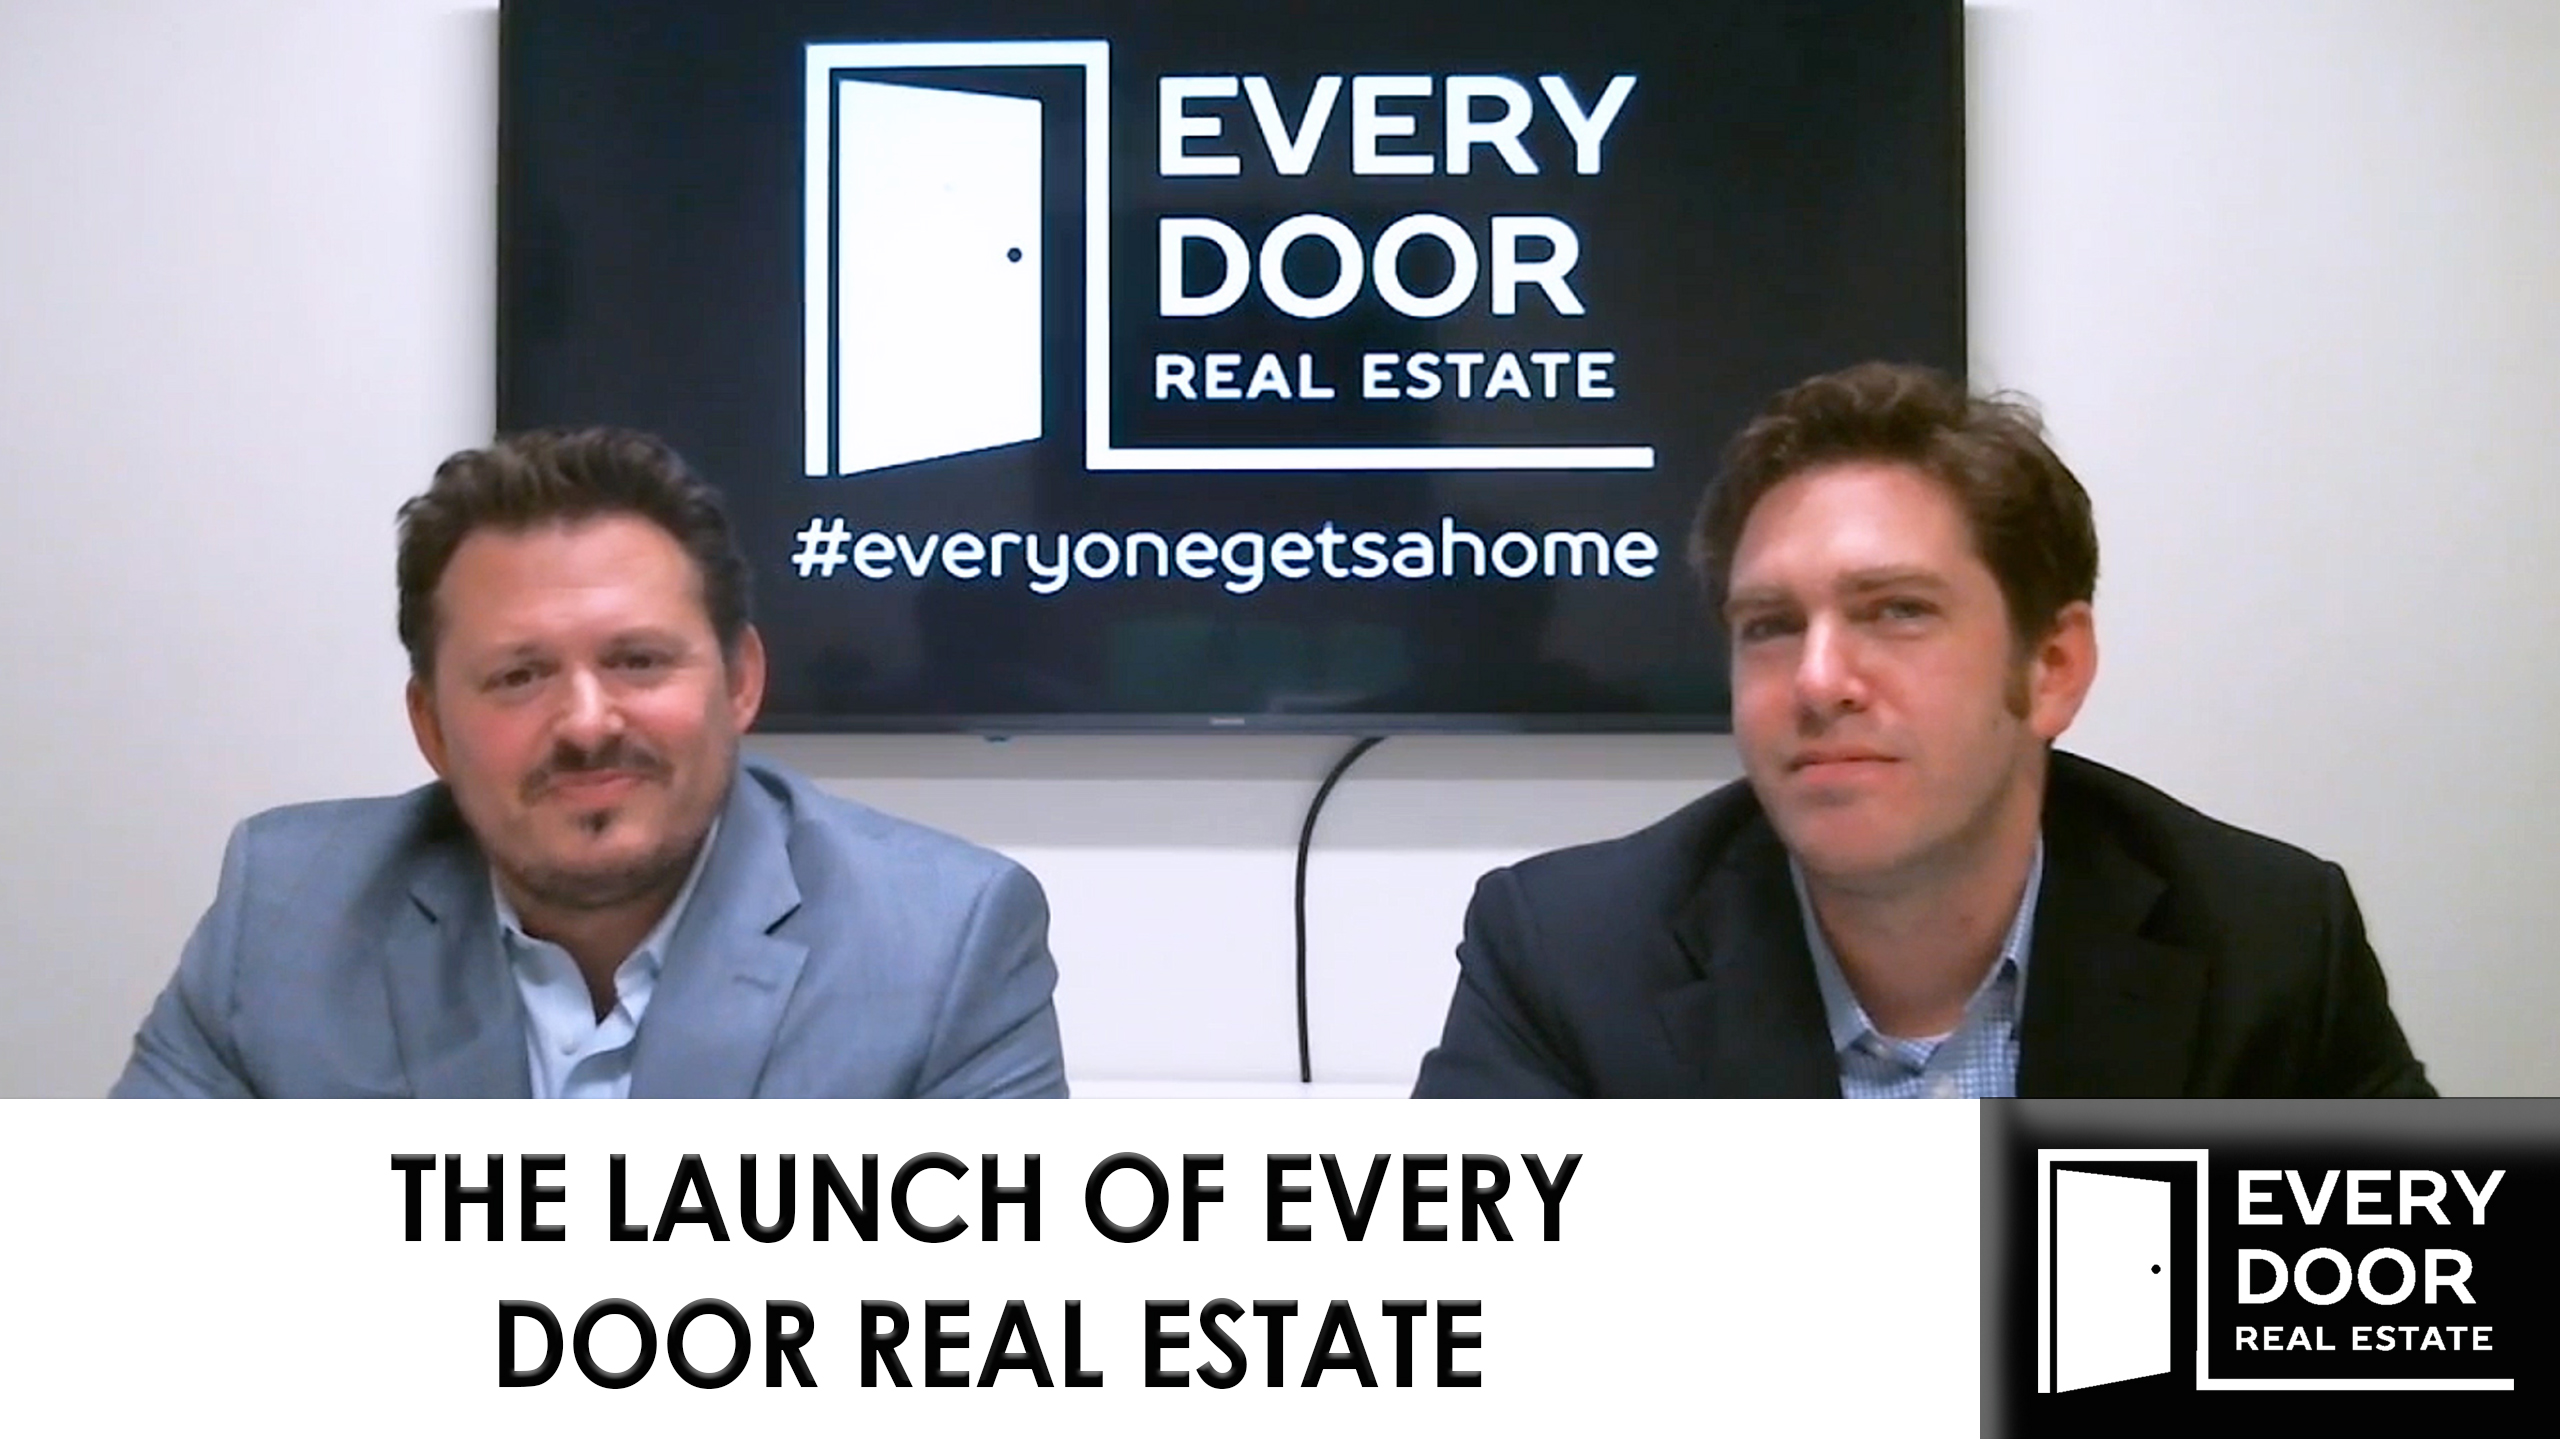 We Are Excited to Launch Every Door Real Estate